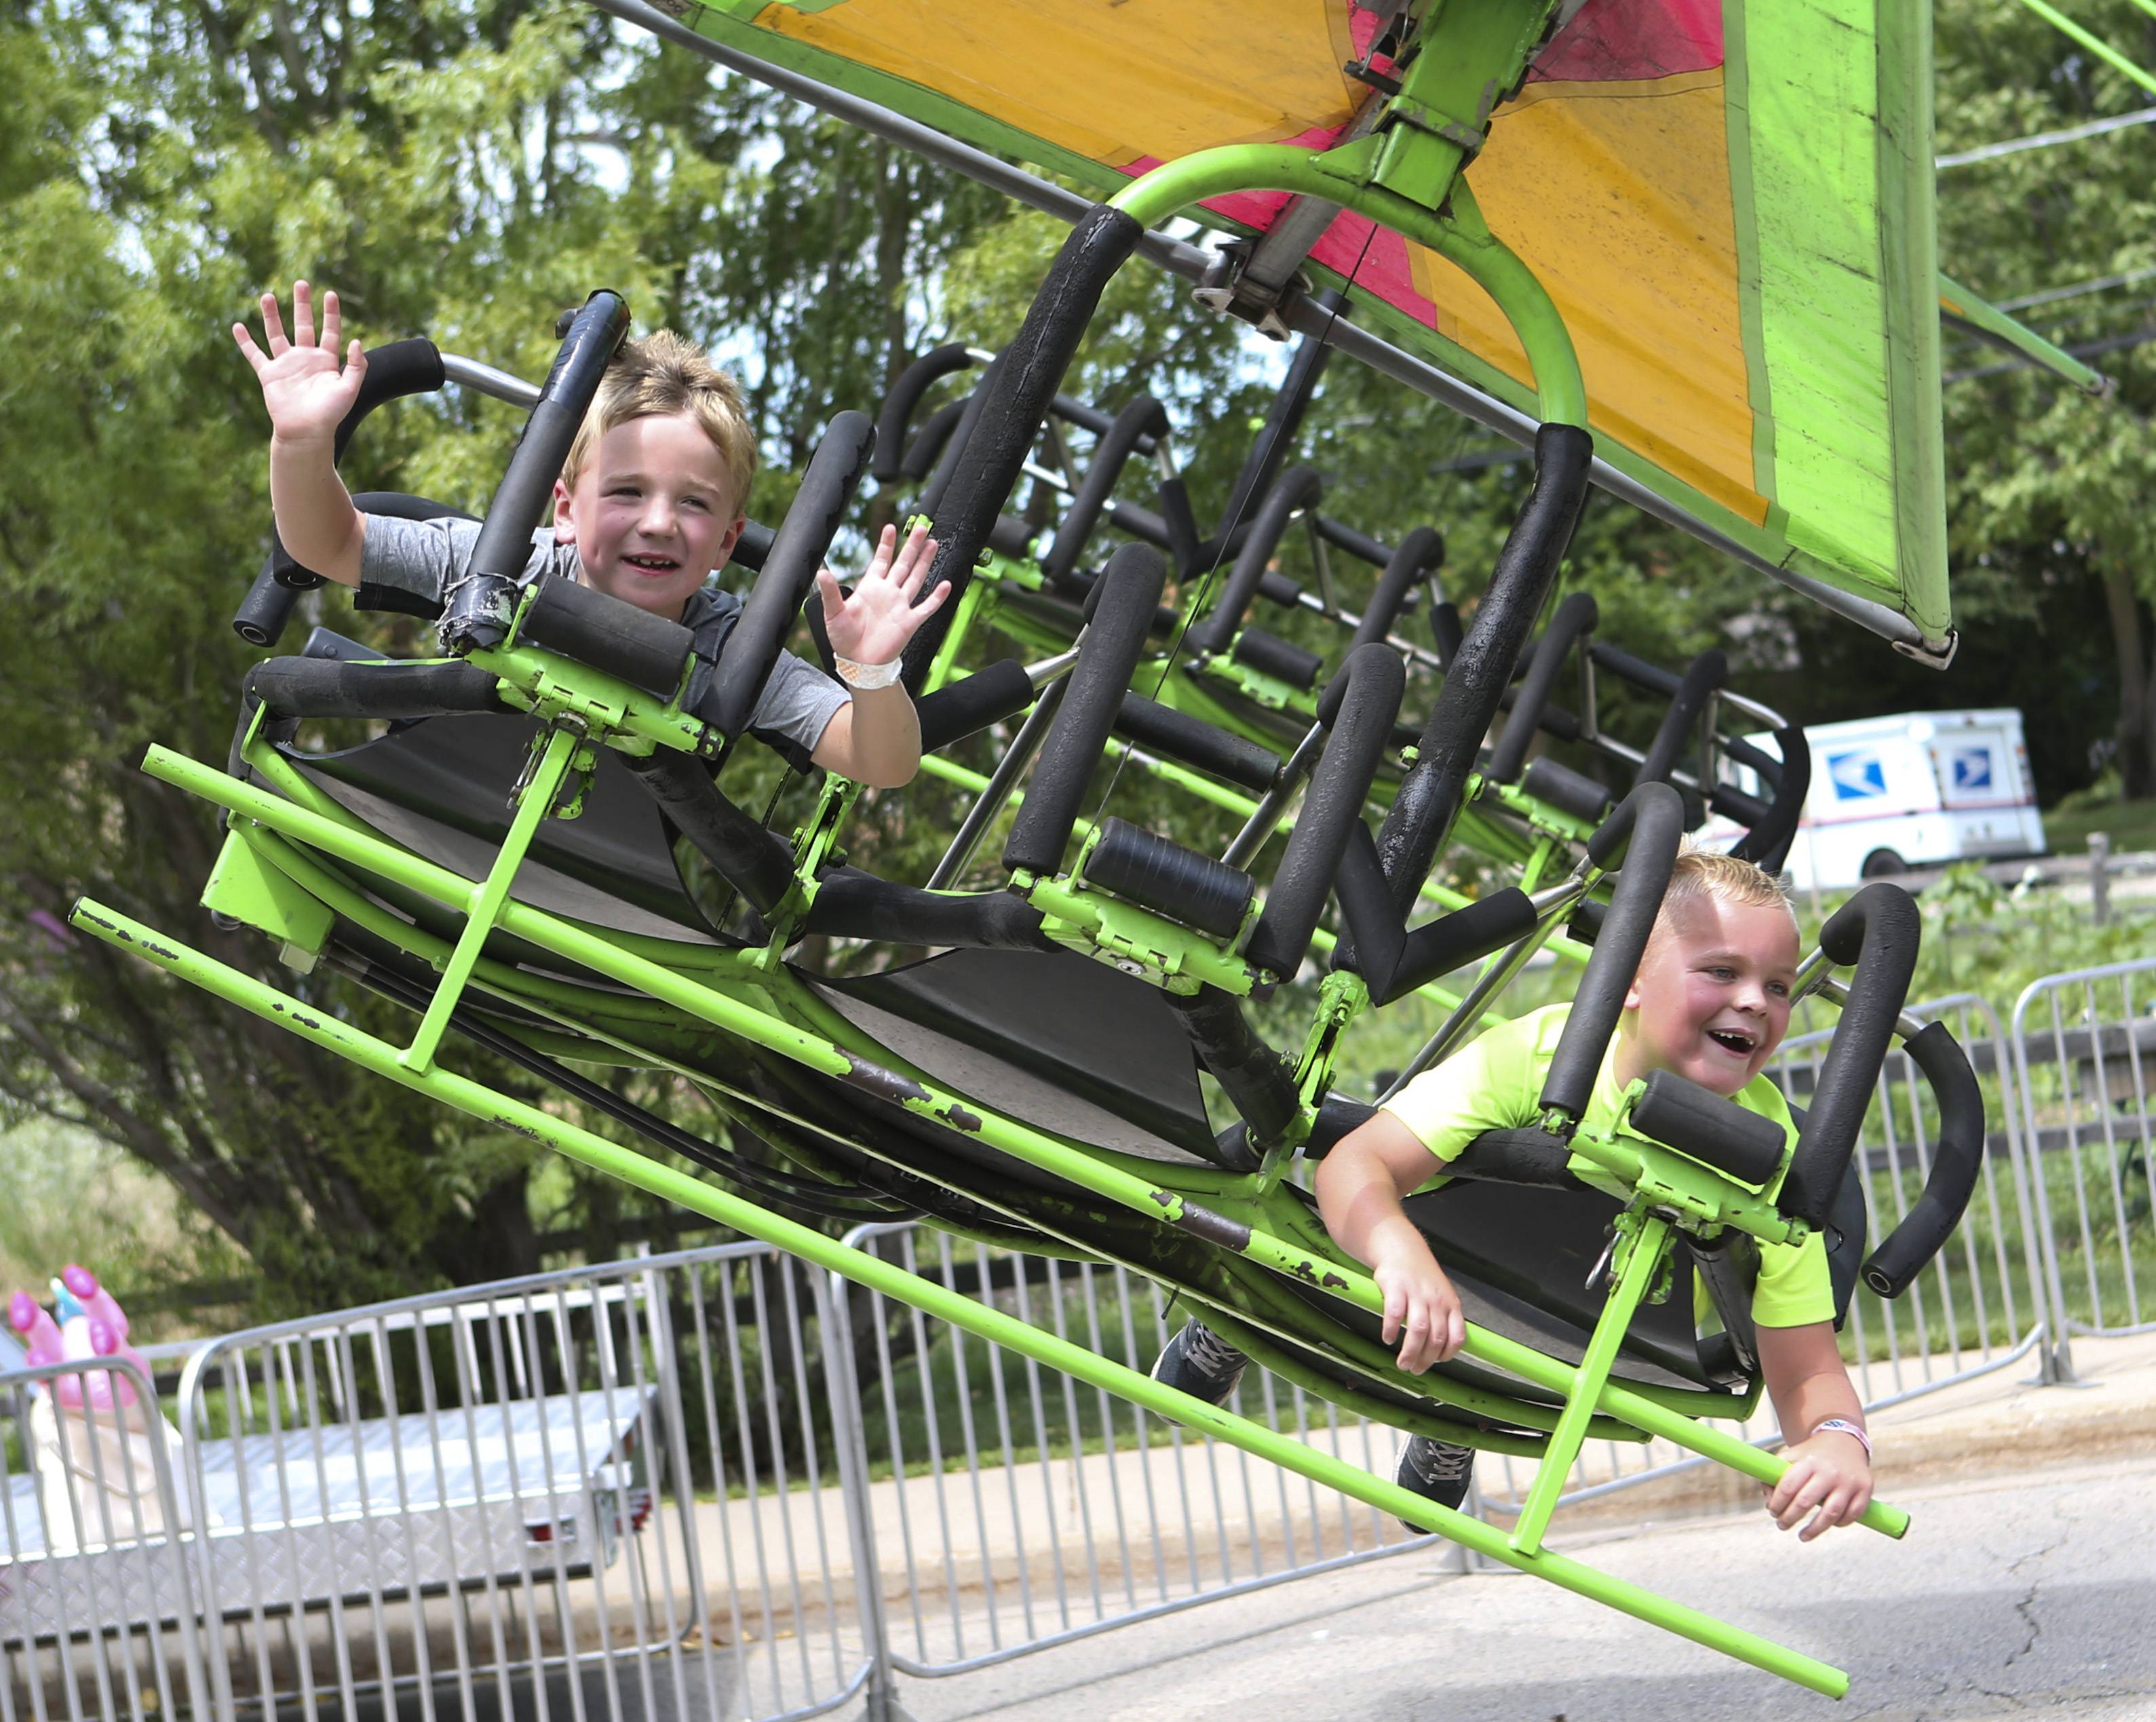 Festivalgoers can print tickets for one free carnival ride per person per day at the Antioch Chamber of Commerce website, antiochchamber.org.